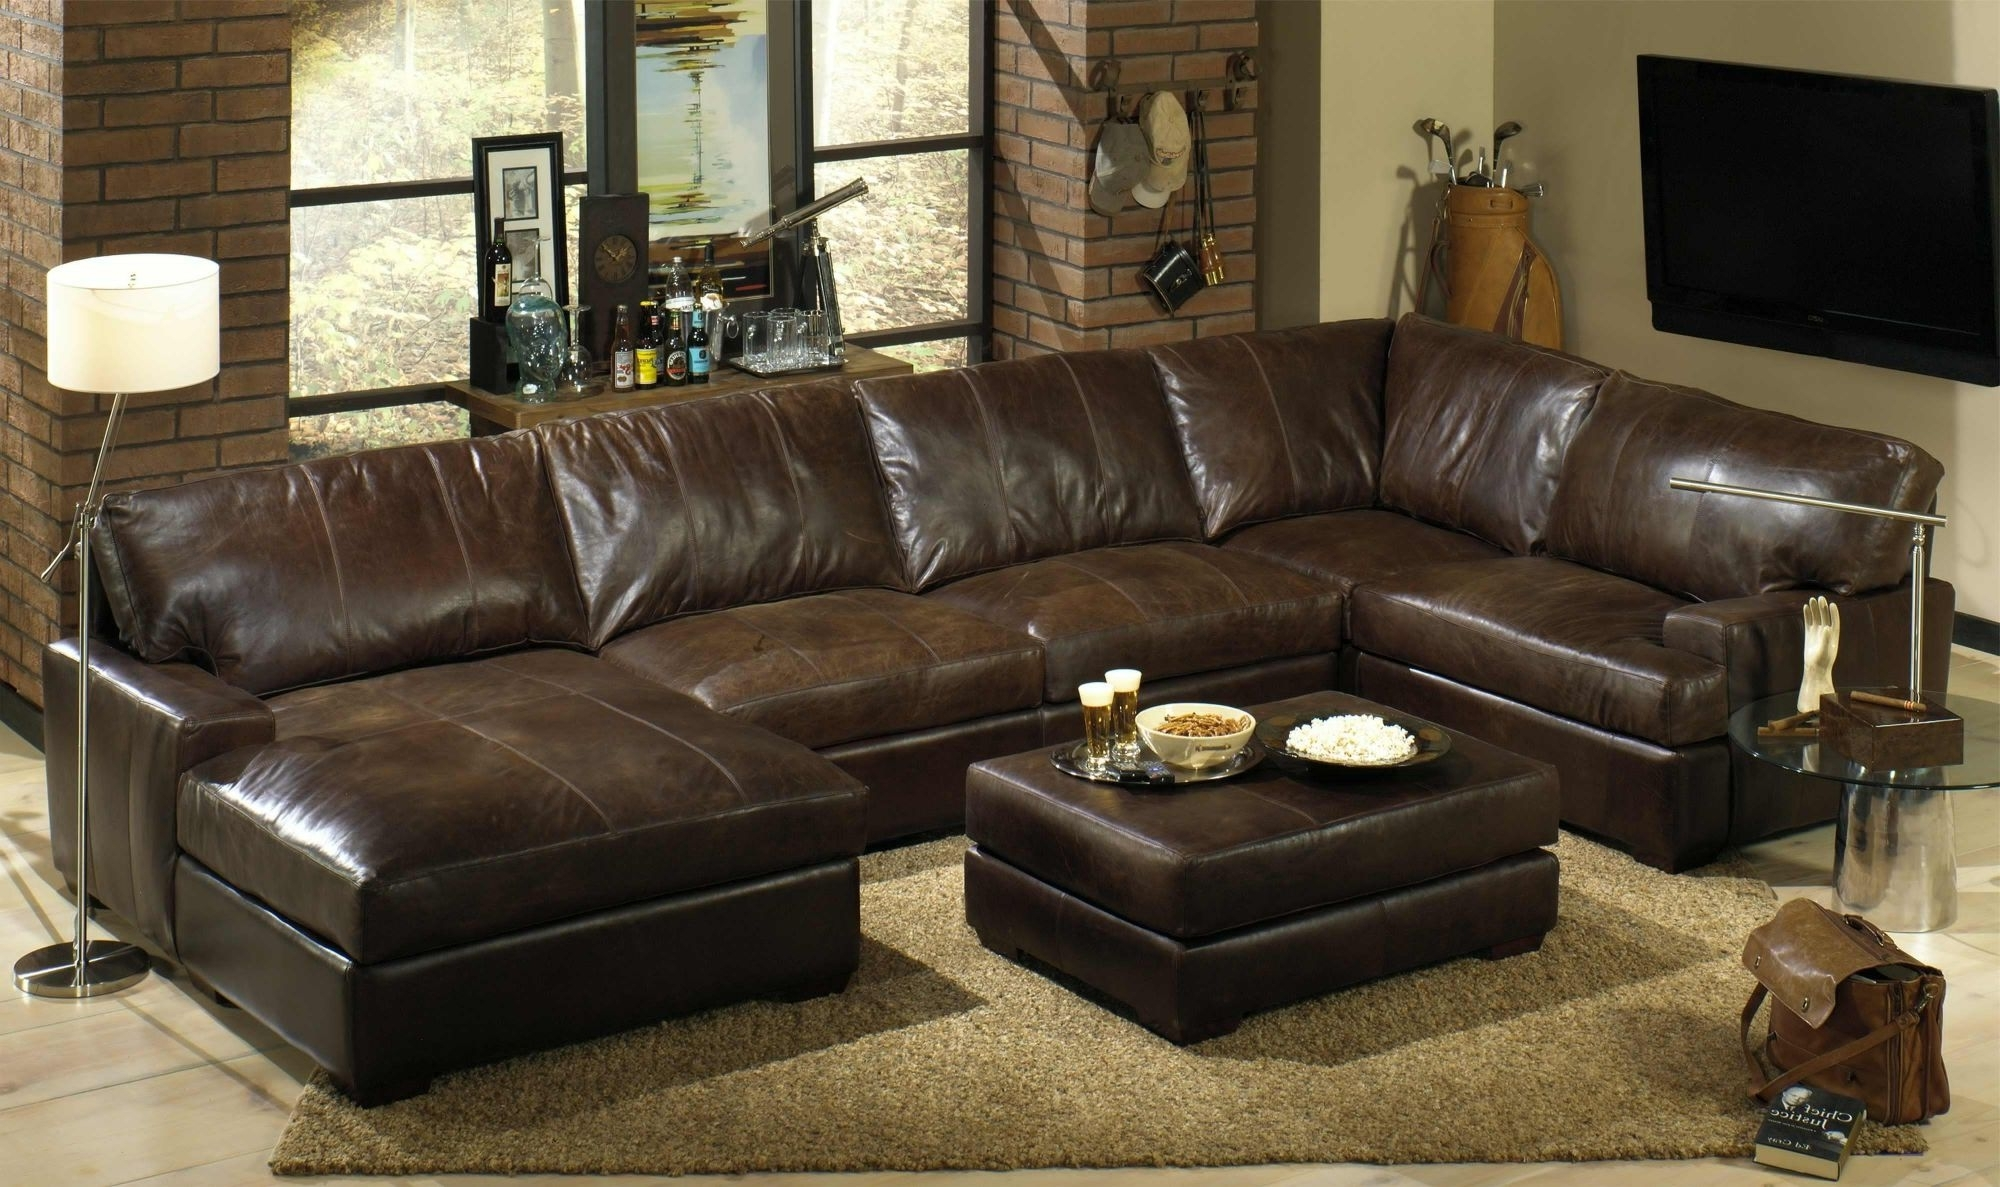 Amazing Sectional Sofa Design Small Leather Chaise Pict Of With For Most Up To Date Sectional Sofas With Recliners For Small Spaces (View 2 of 15)